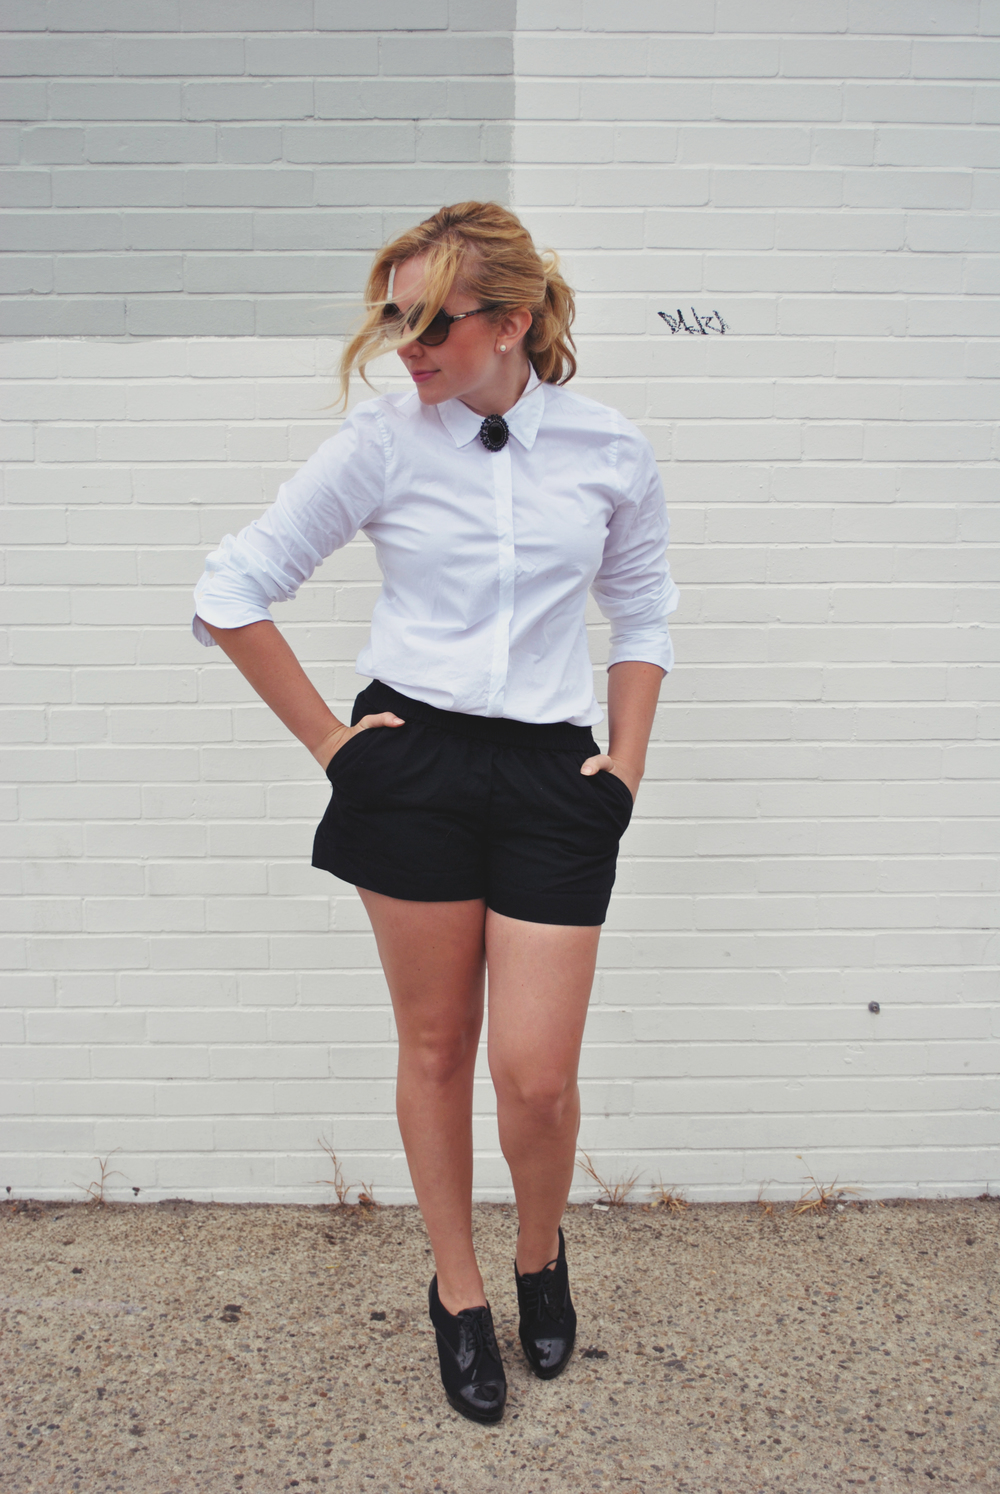 shortie // black and white // black and white outfit // evening outfit shorts // back to school outfit | thoughtfulwish